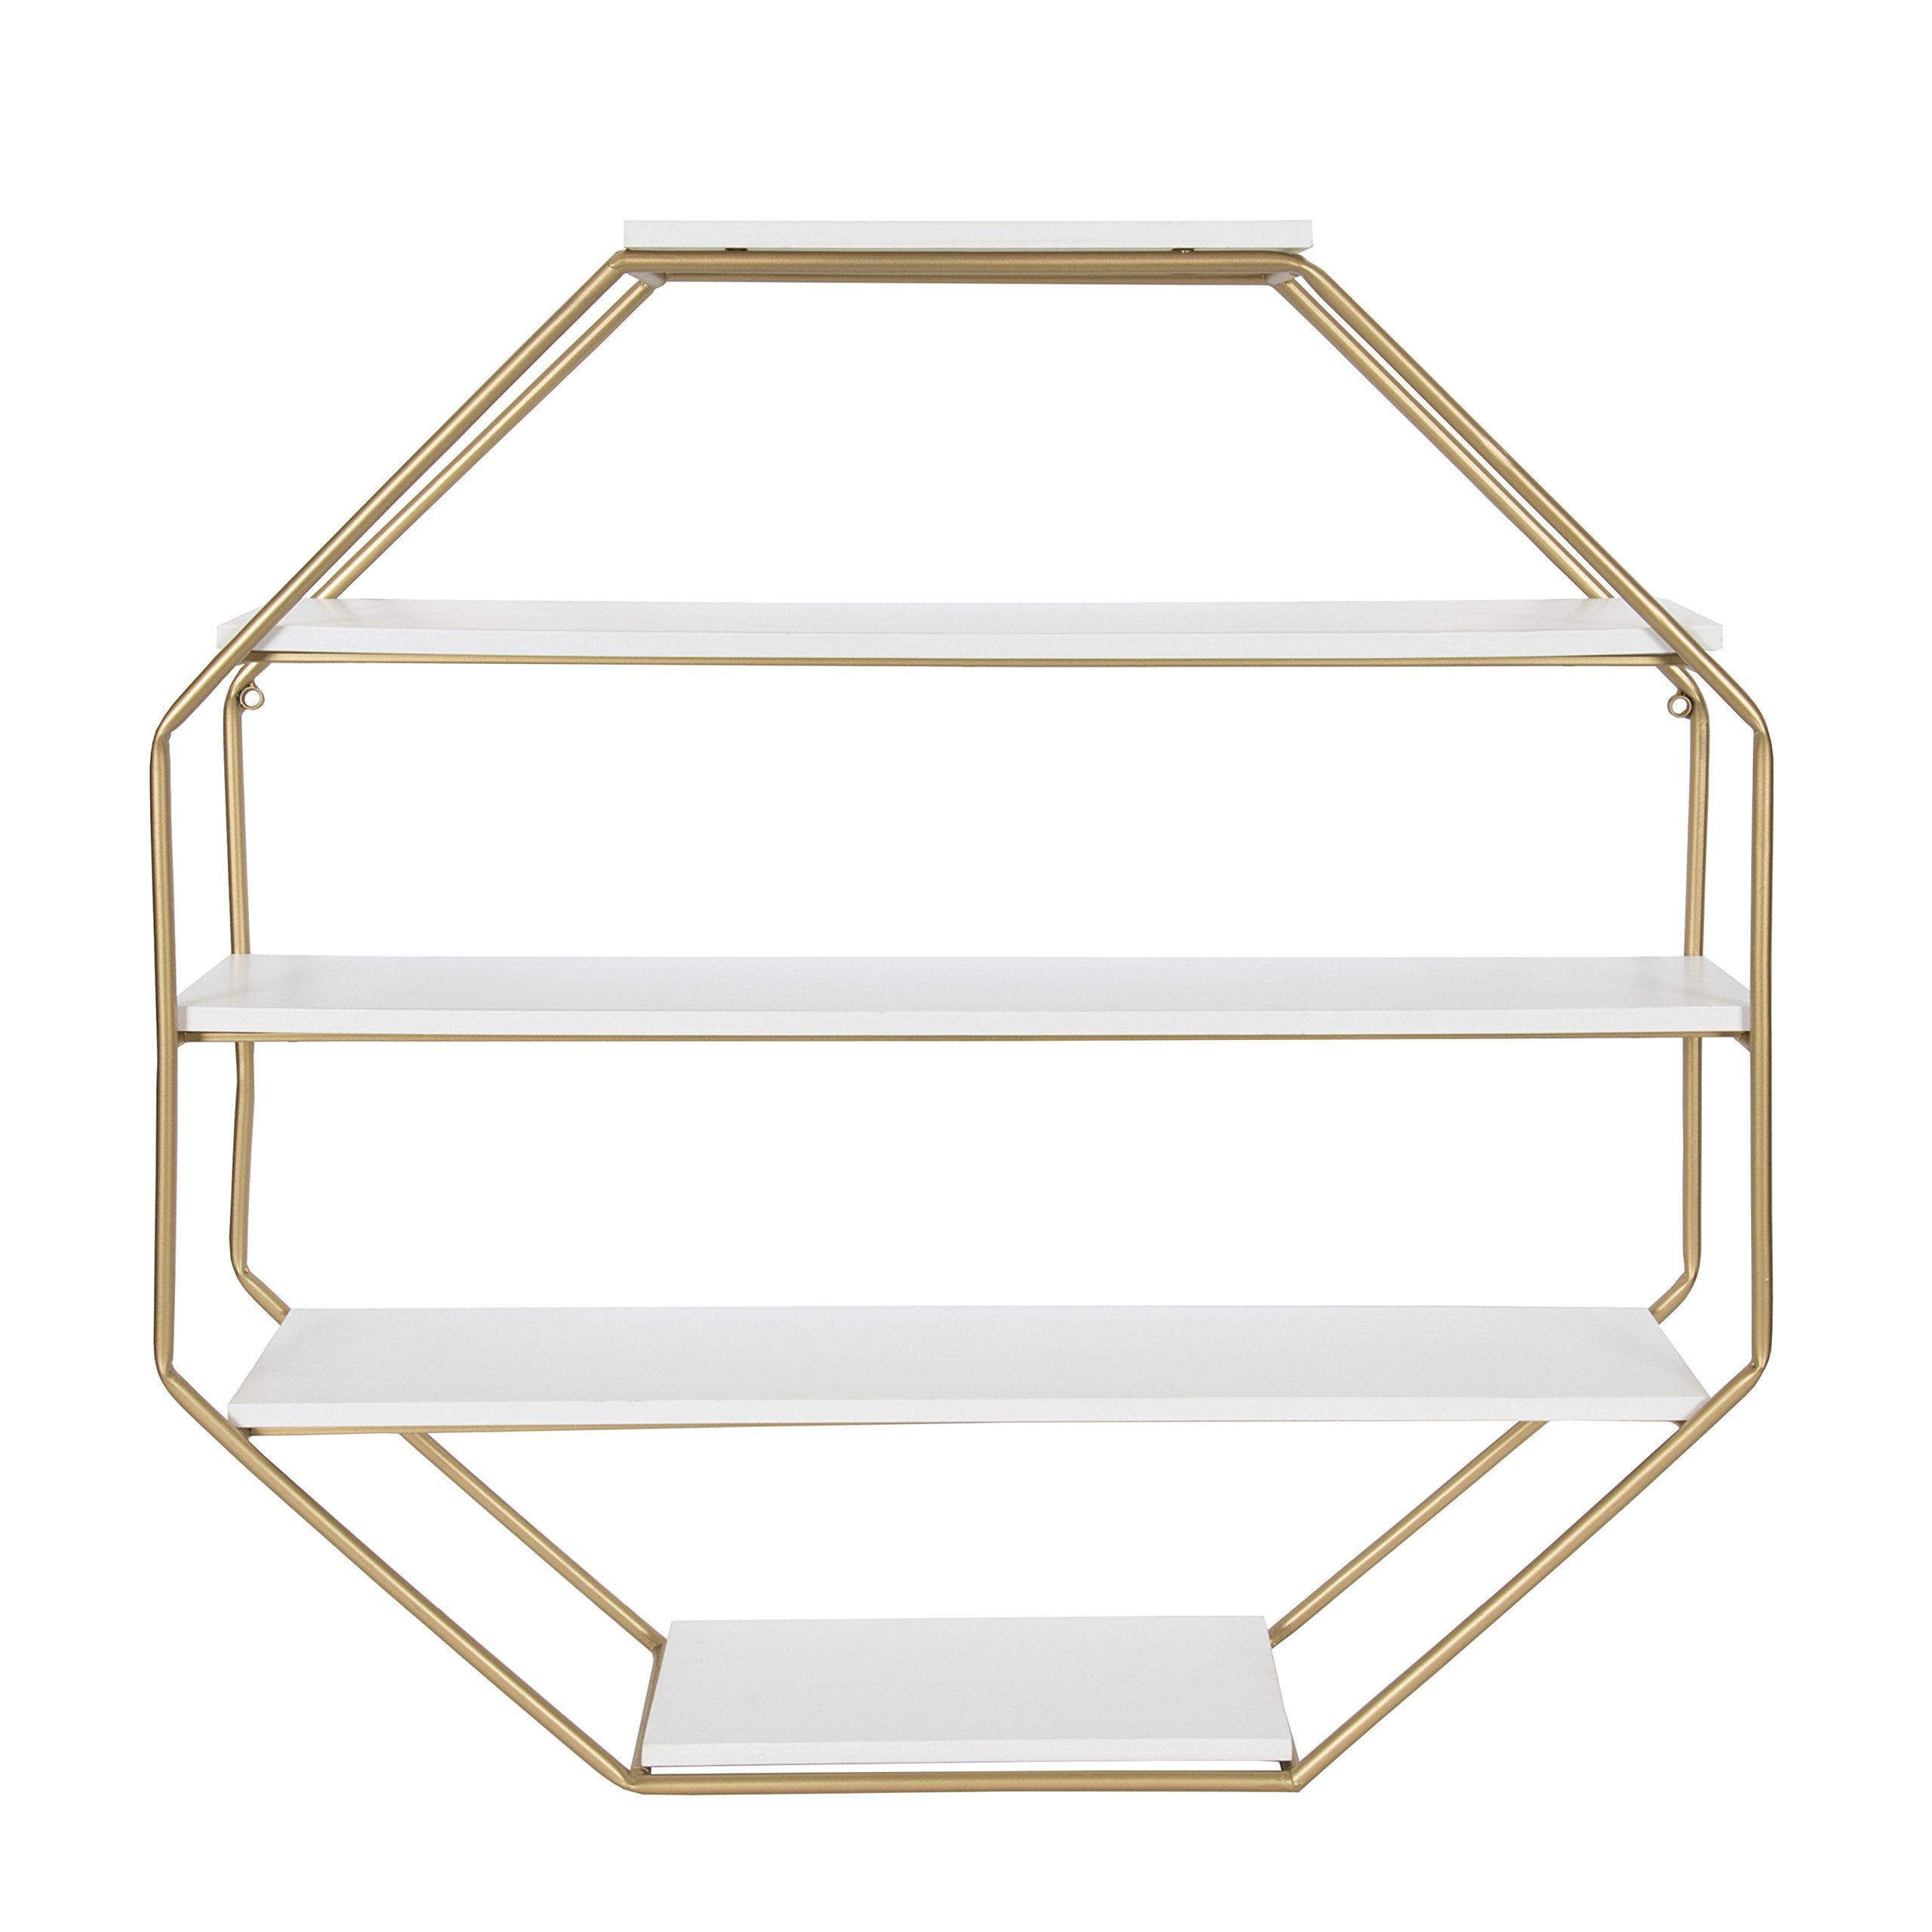 Kate and Laurel Lintz Octagon Floating Wall Shelves with Metal Frame, White/Gold